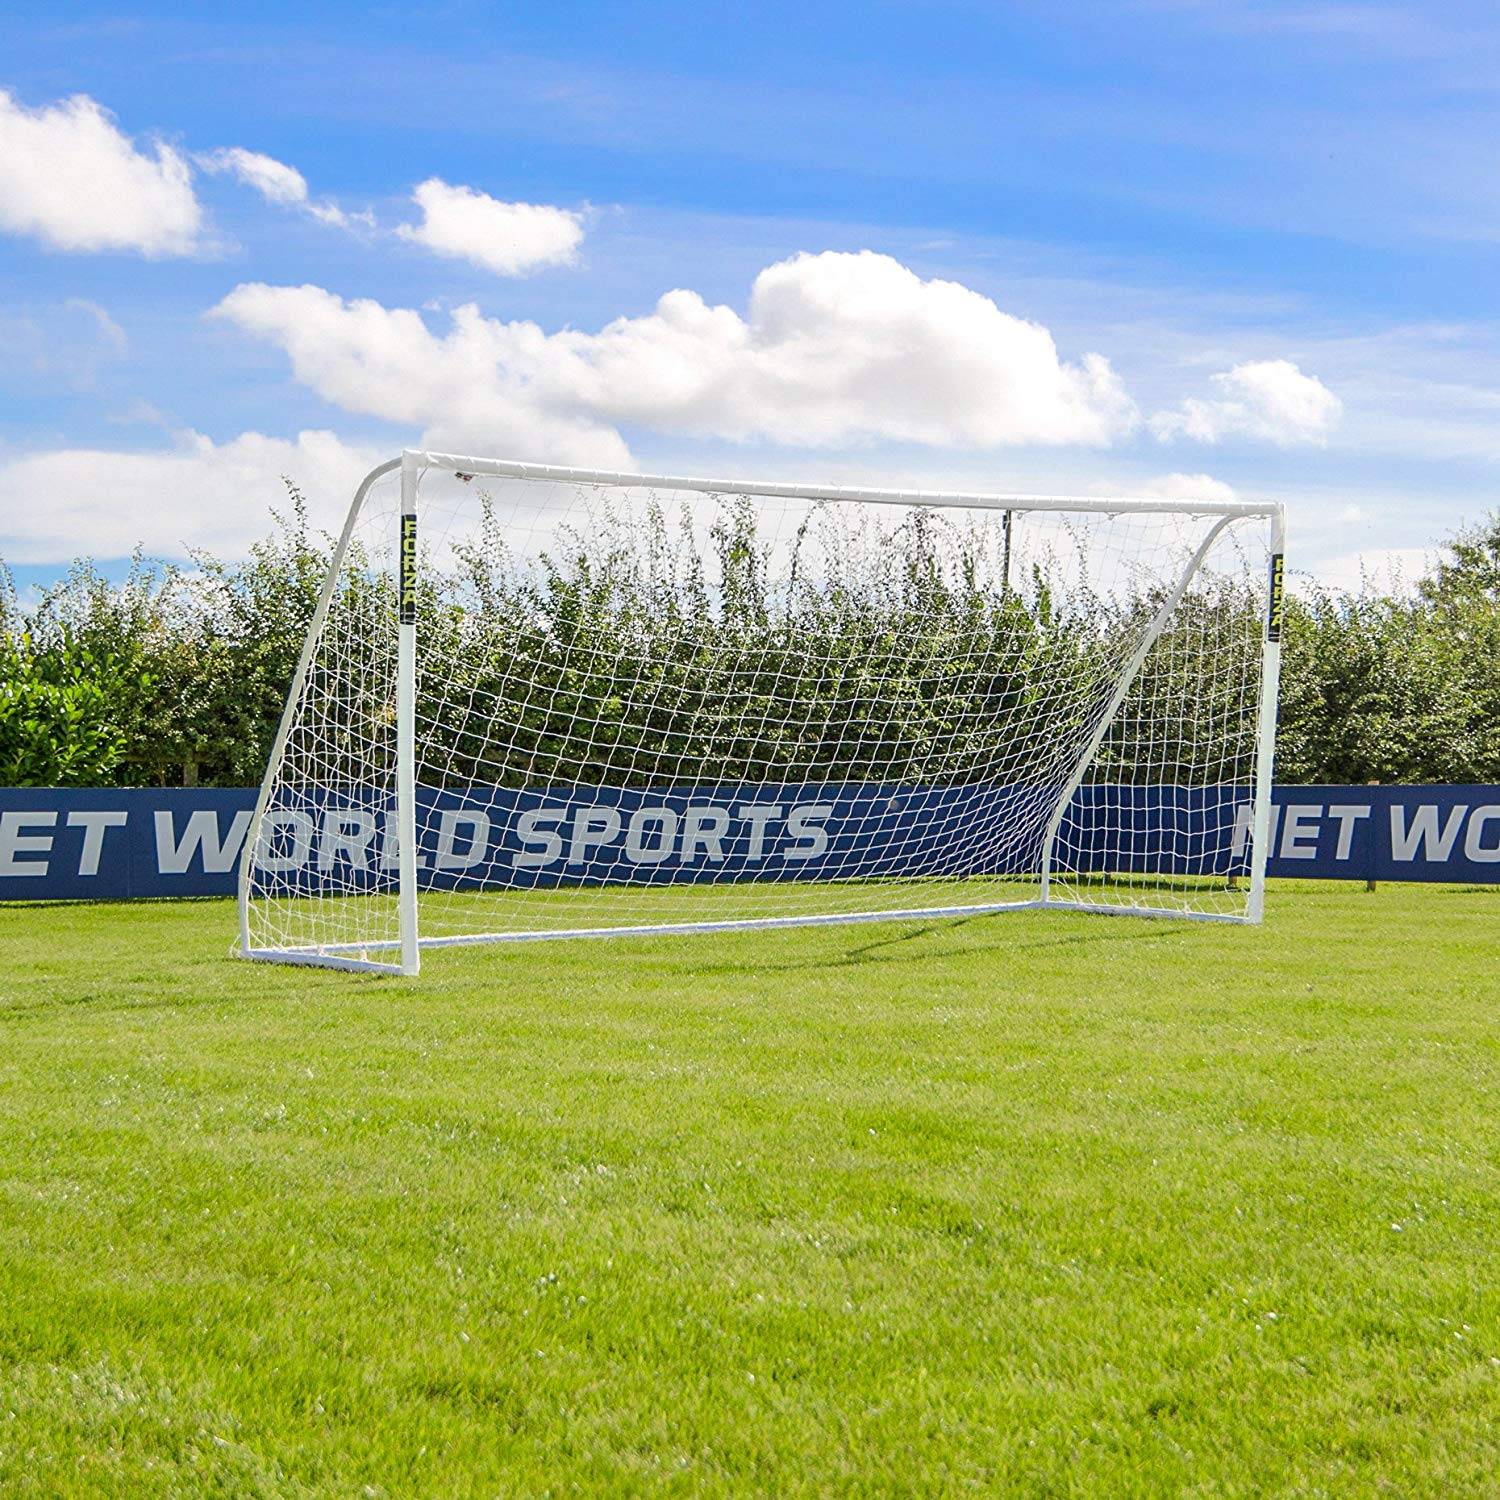 e24bfe7a3 Get Quotations · Forza 16ft x 7ft Soccer Goal & Net - The Largest Portable Soccer  Goal Available!